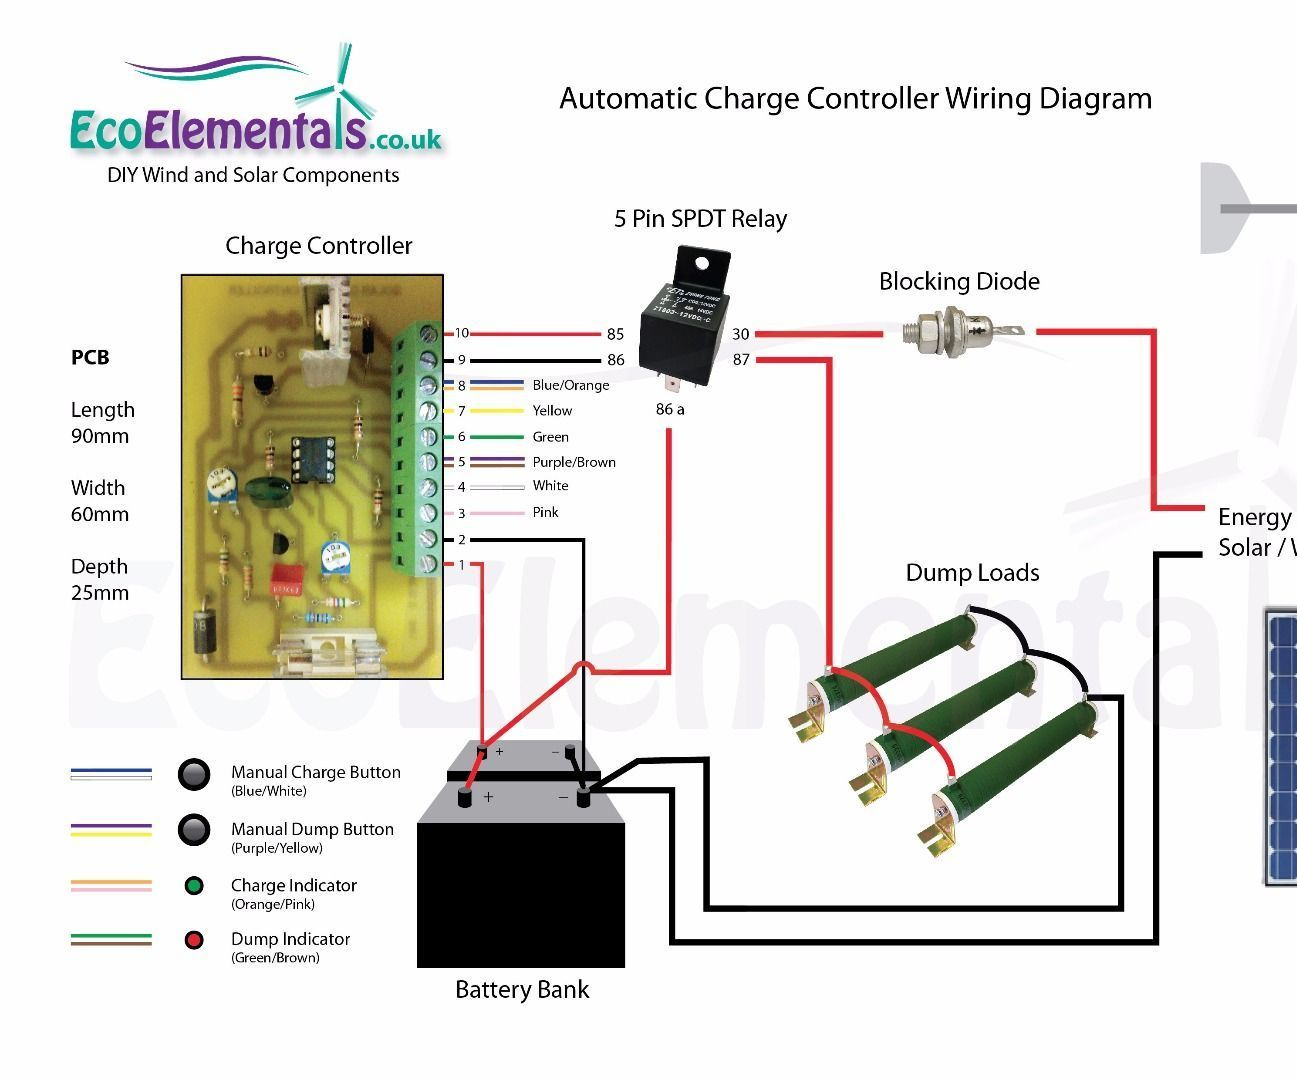 medium resolution of charge controller wiring diagram for diy wind turbine or solar solar schematic wiring diagram charge controller